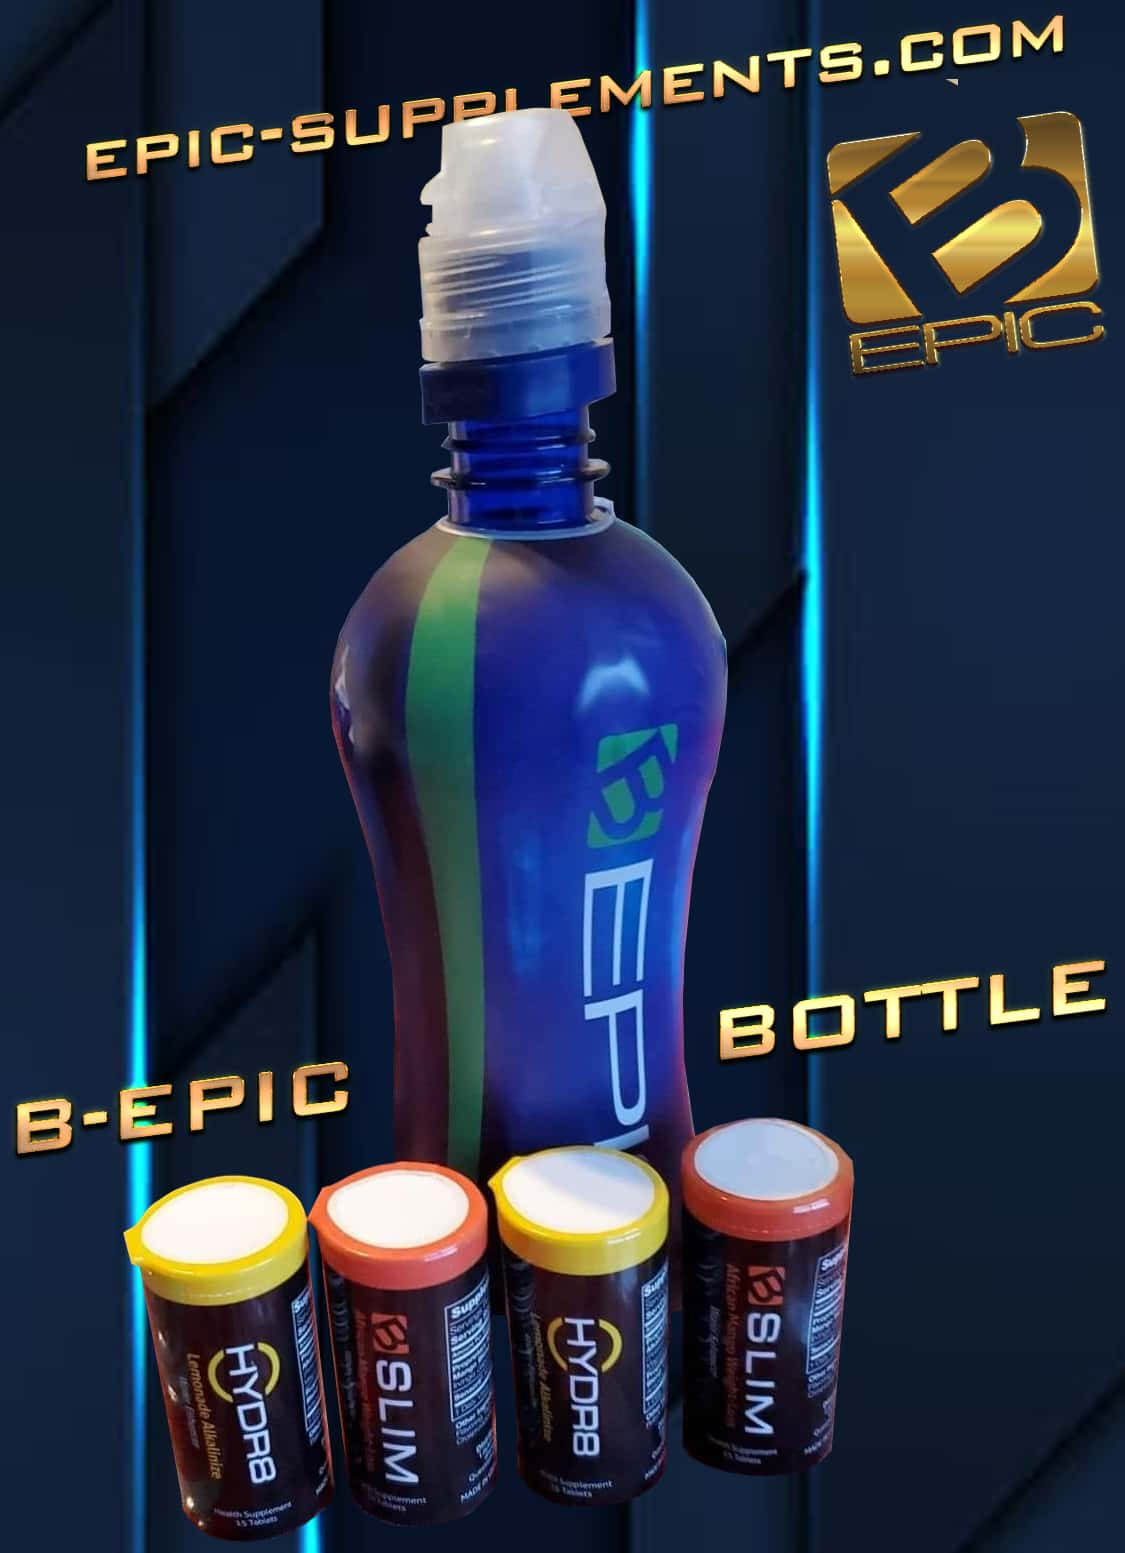 special Bepic bottle for b-slim and hydr8